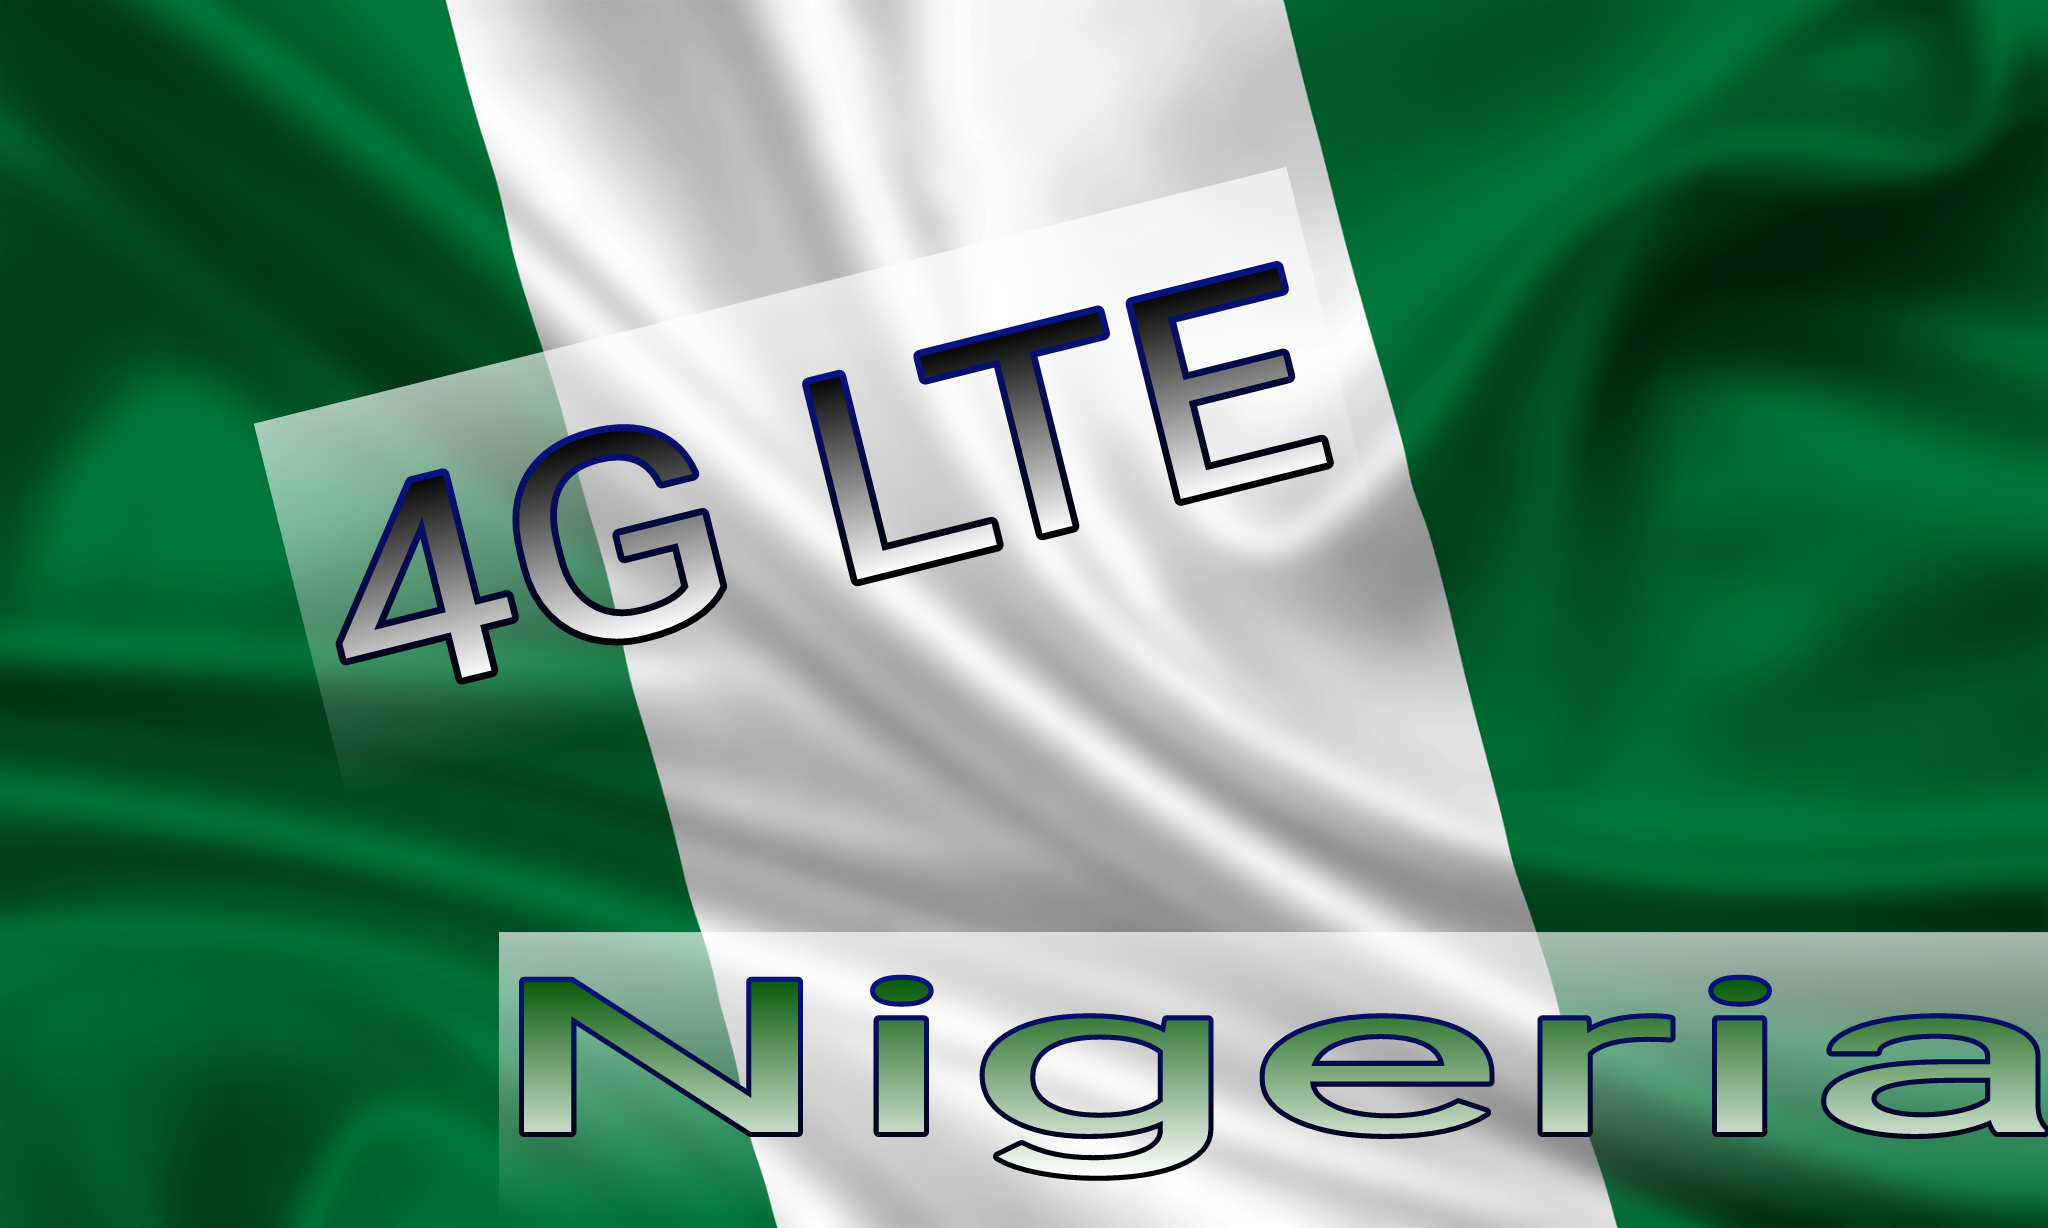 Nigeria-Flag.png-Full List Of 4g Lte Phones That Works Perfectly In Nigeria + Site To Check Phone Compatibility